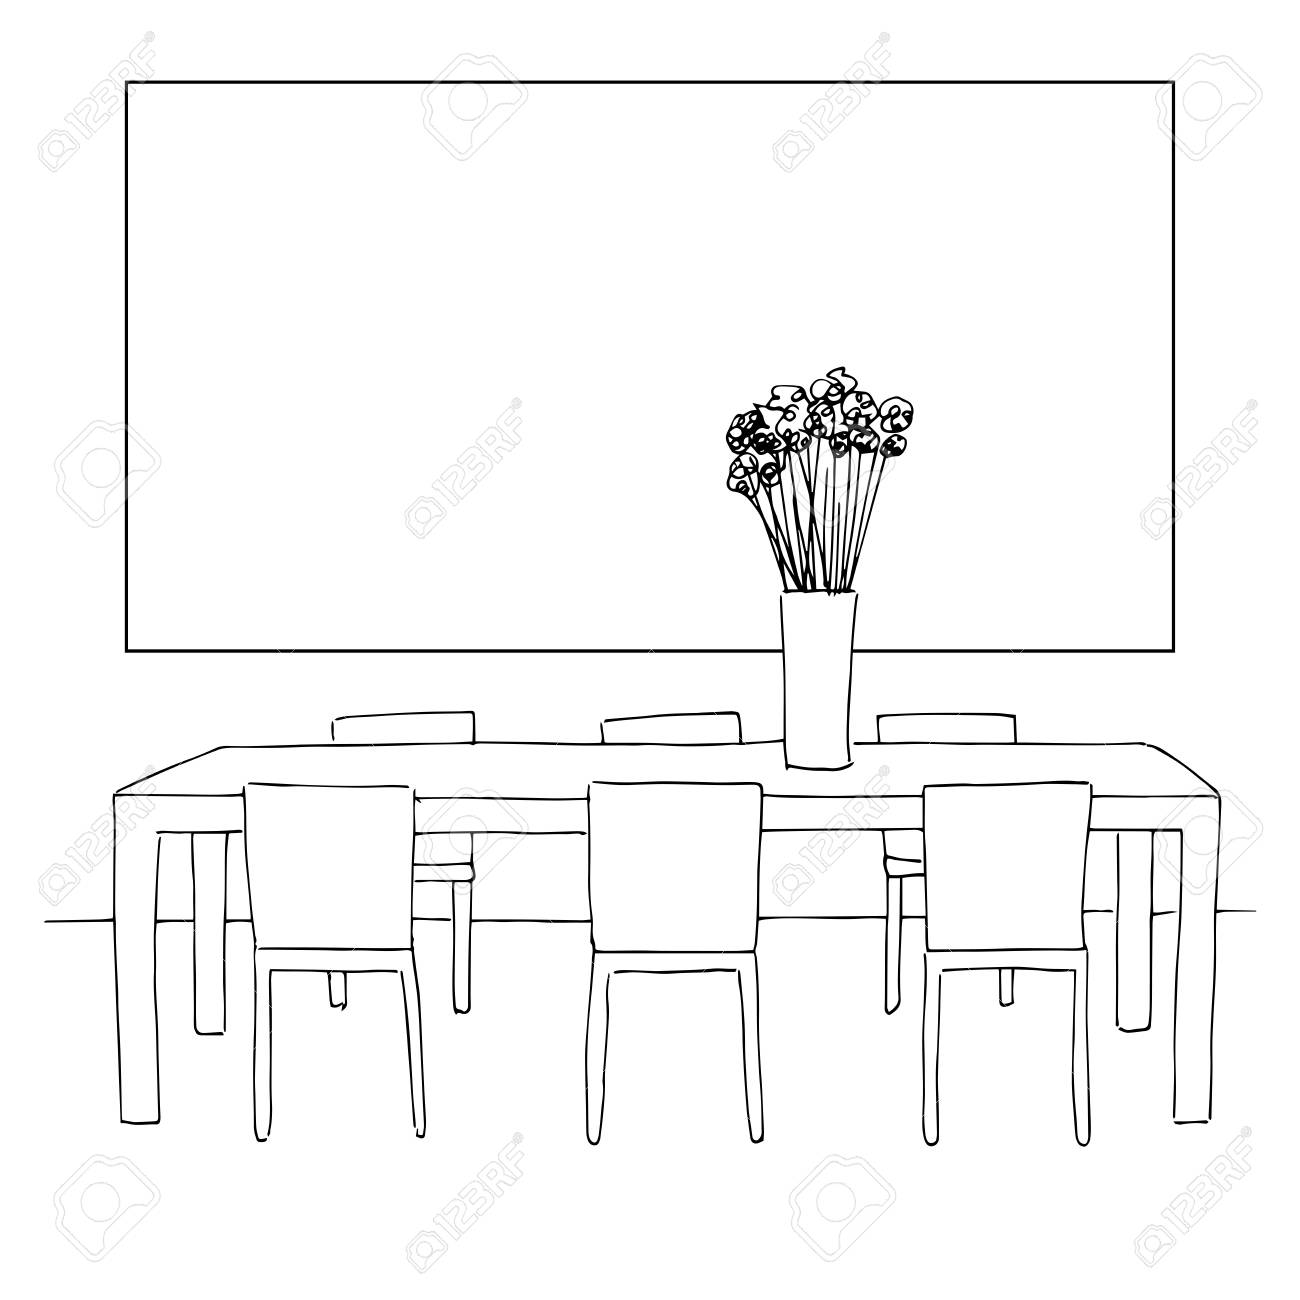 dining room table clipart black and white. Part Of The Dining Room  Table And Chairs On Table Vase Flowers Of The Dining Room And Chairs Vase